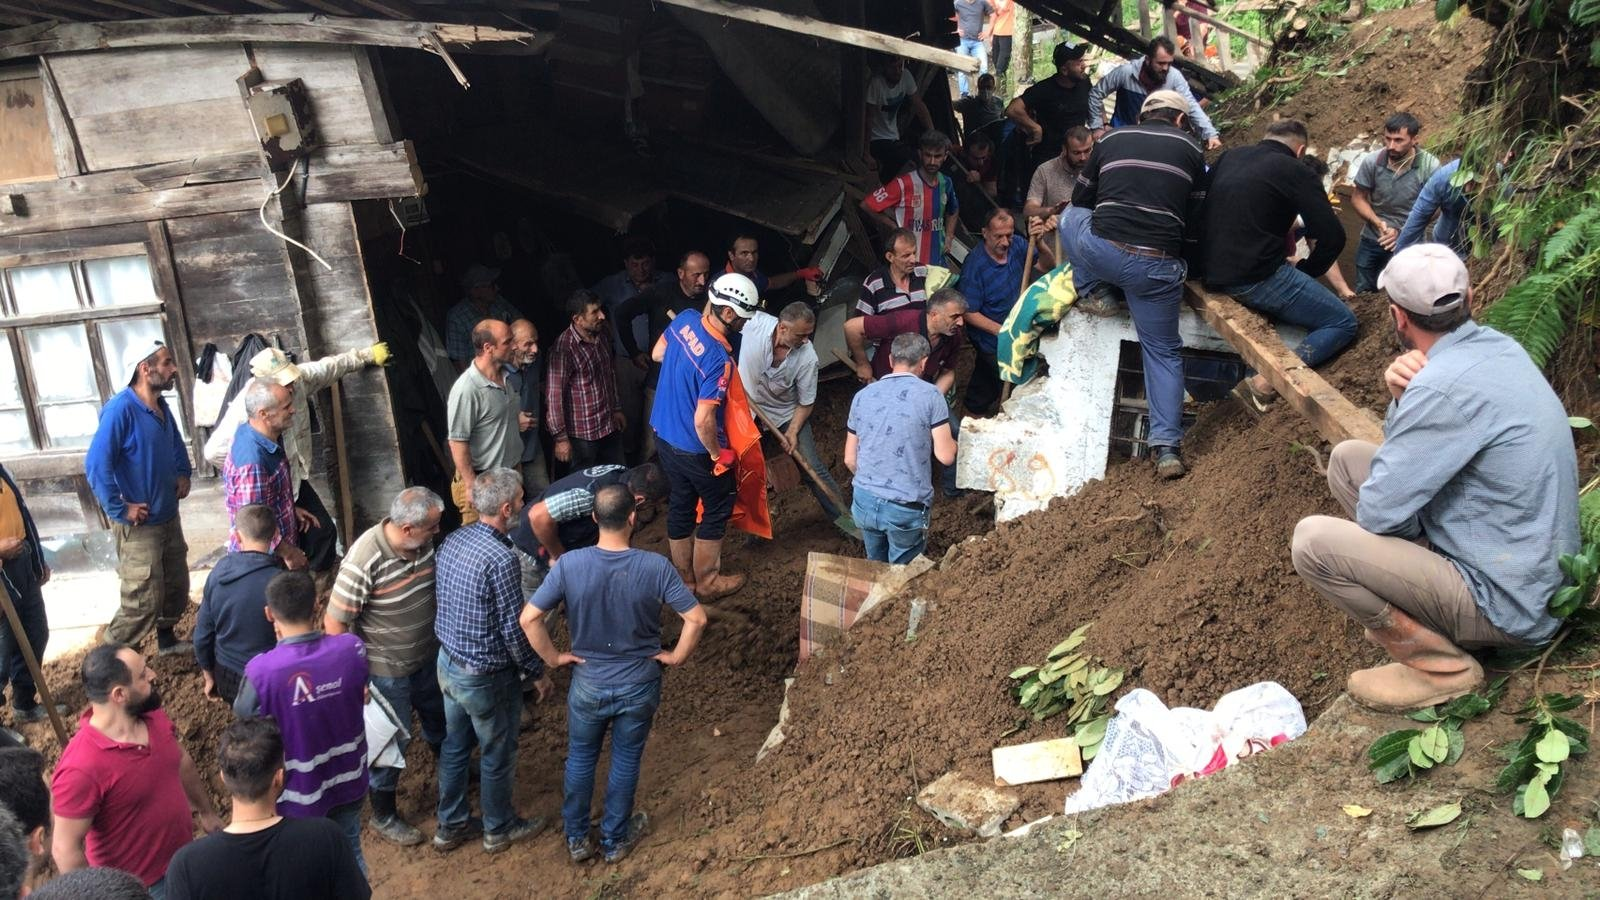 People dig the soil covering a house to check for survivors in a landslide-hit area, in Rize, northern Turkey, July 15, 2021. (AA PHOTO)